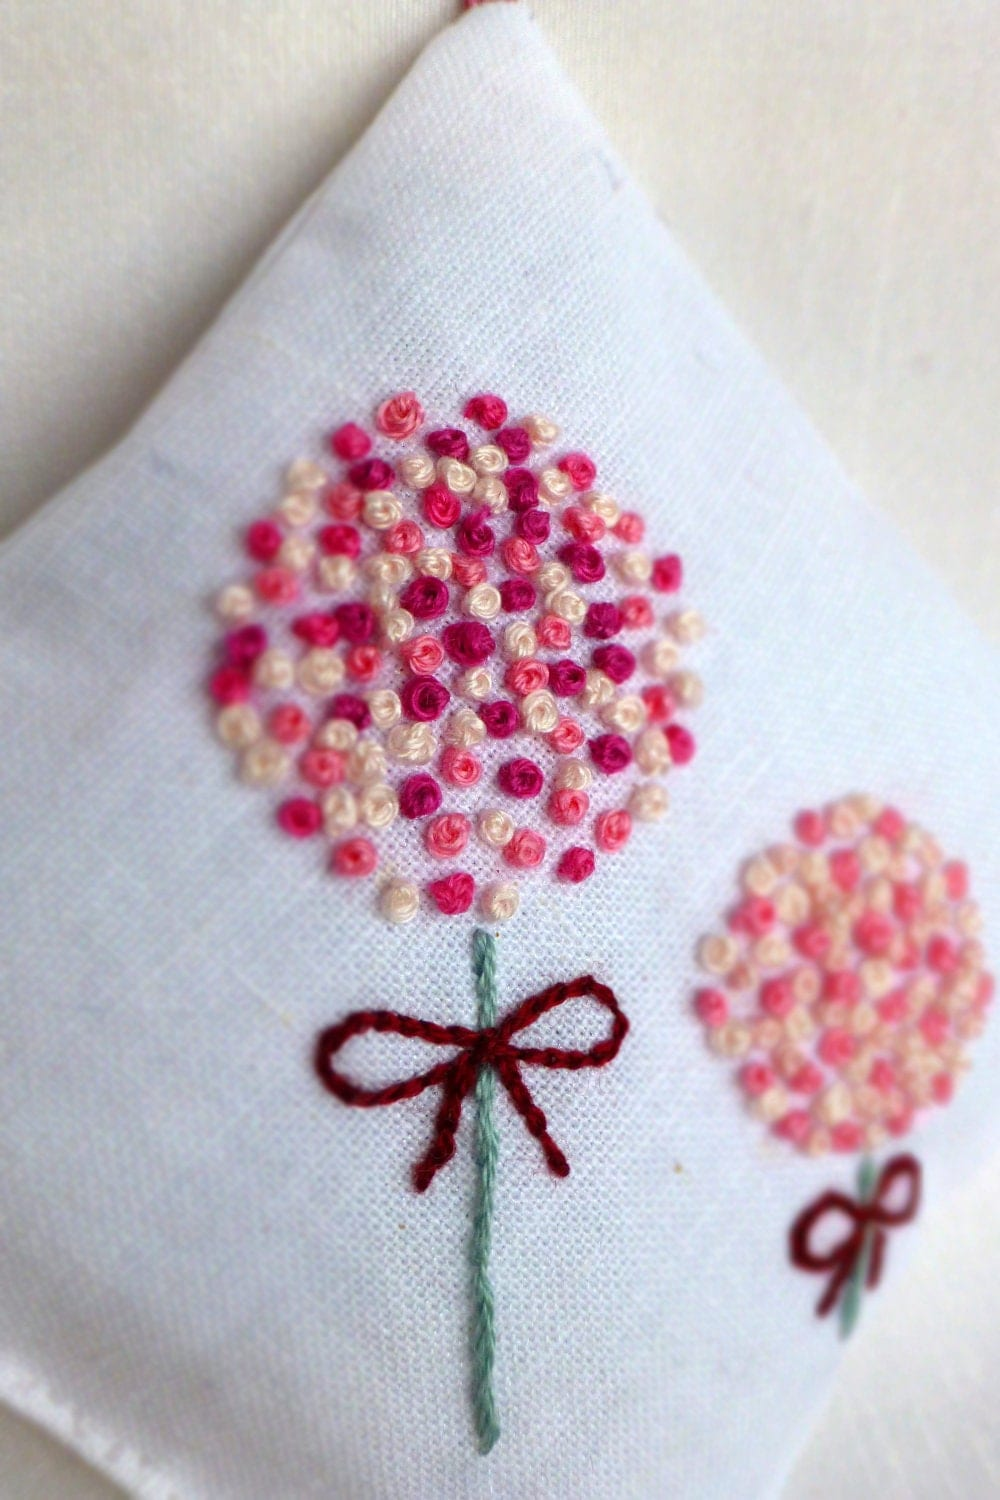 Million french knots lavender sachet hand embroidery by